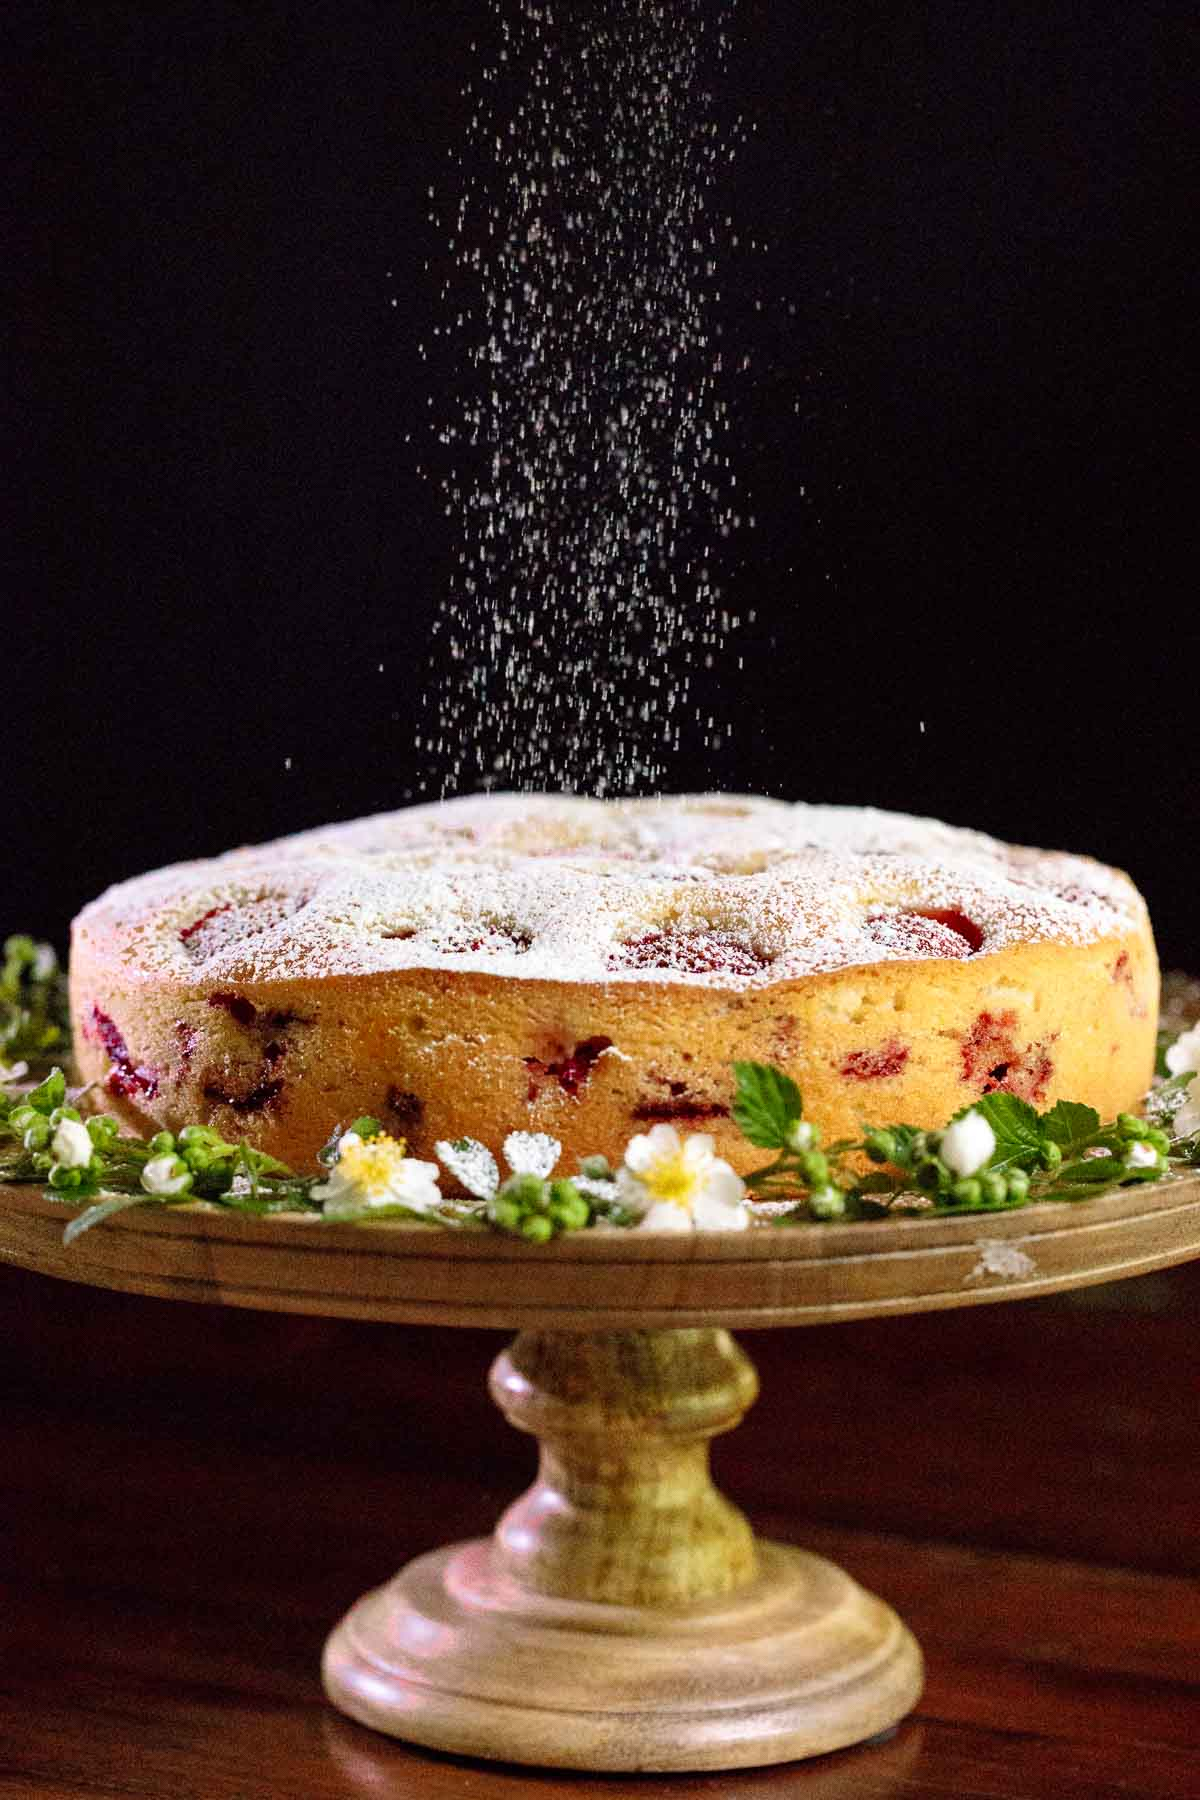 Vertical photo of a Fresh Strawberry Buttermilk Cake on a wooden cake stand with a shower of powdered sugar.